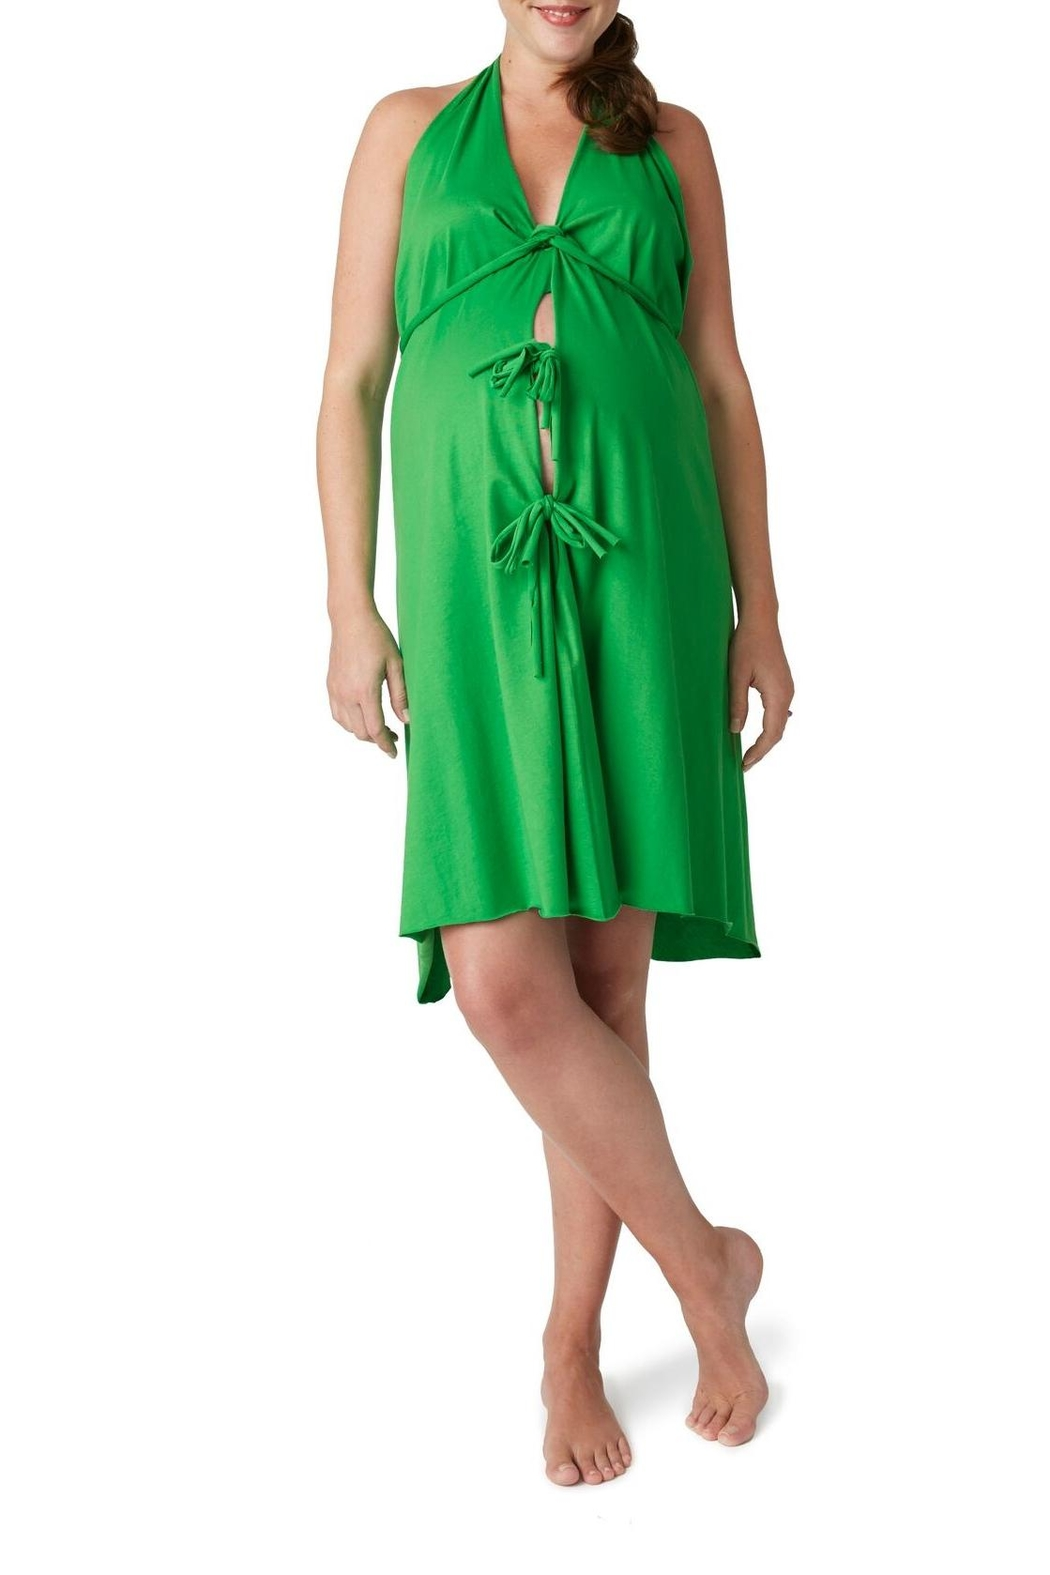 Pretty Pushers Green Birthing Gown from Maryland by Barefoot Baby ...